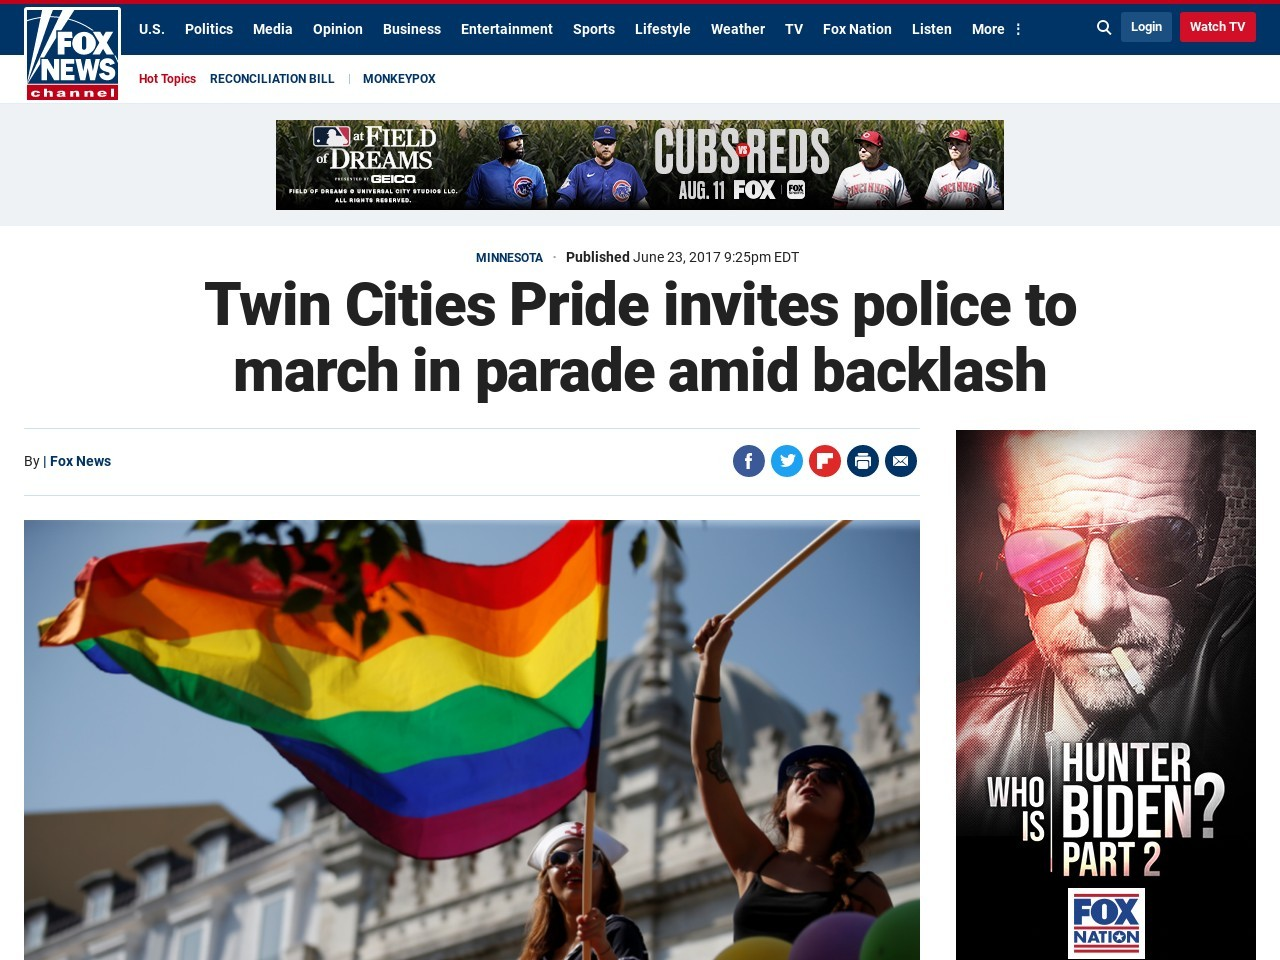 Twin Cities Pride invites police to march in parade amid backlash